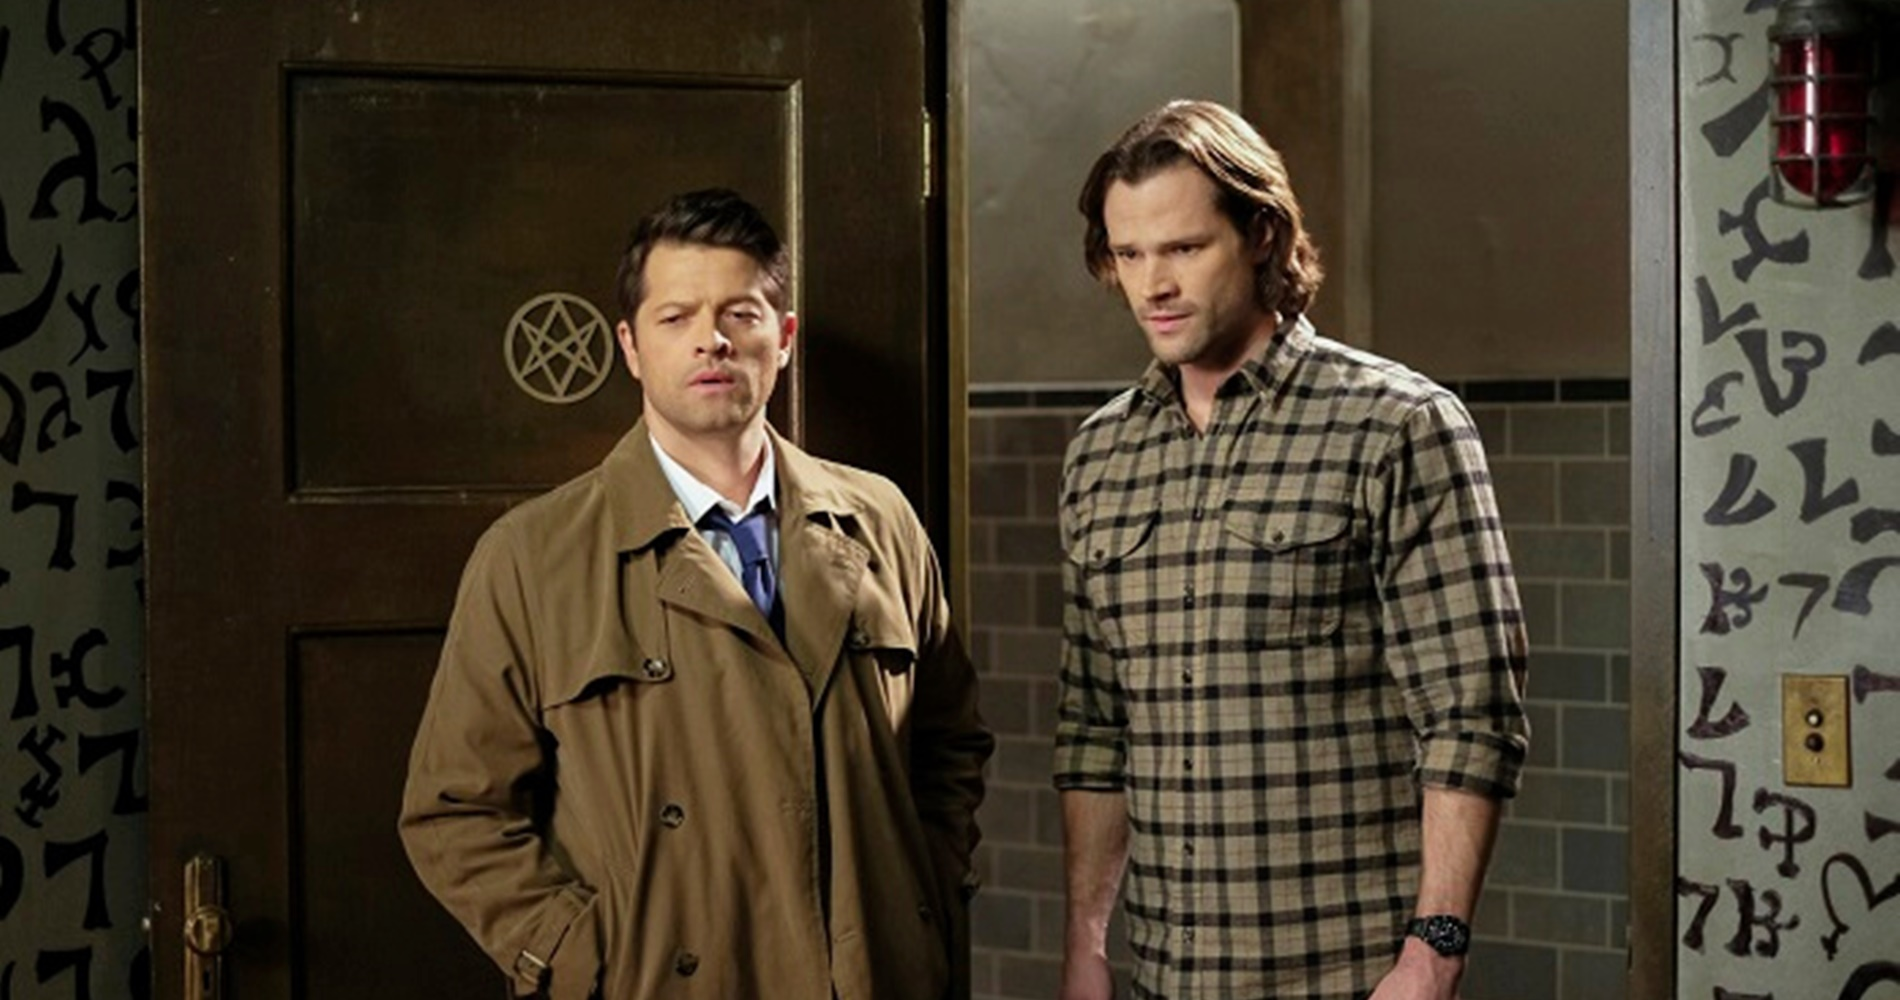 Supernatural season 13 episode 18, movies/tv, pop culture, wdc-slideshow